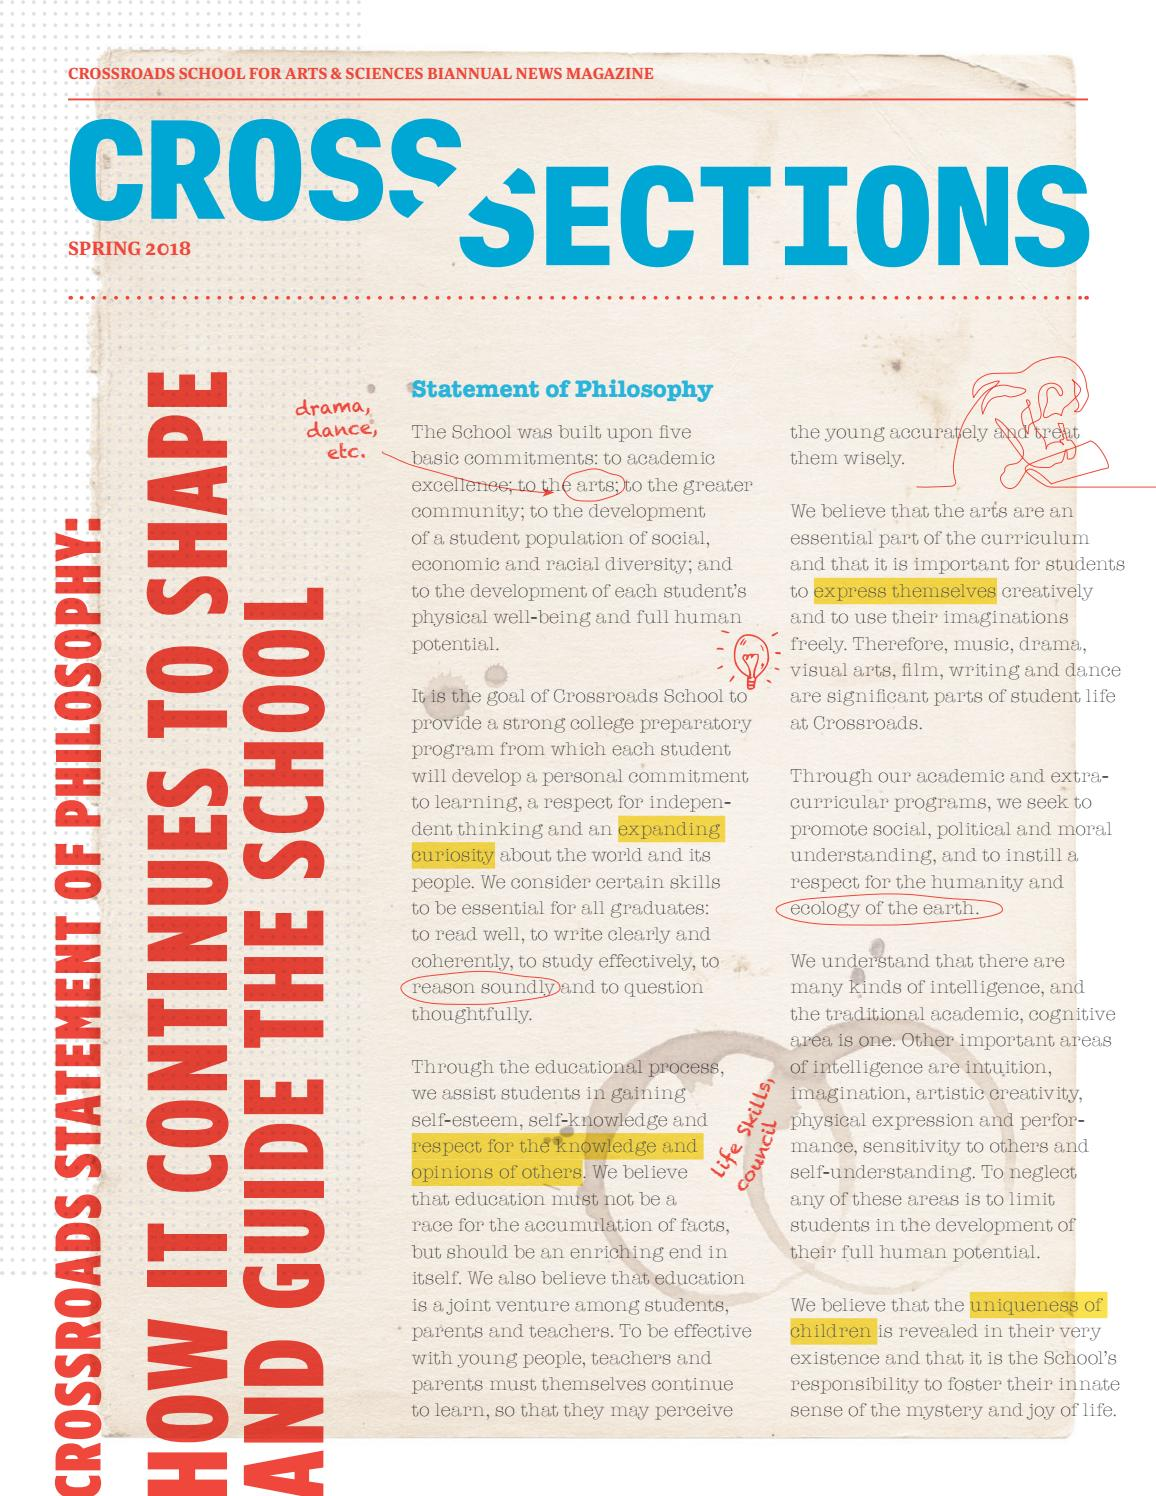 Cross Sections (Spring 2018) by Crossroads School for Arts